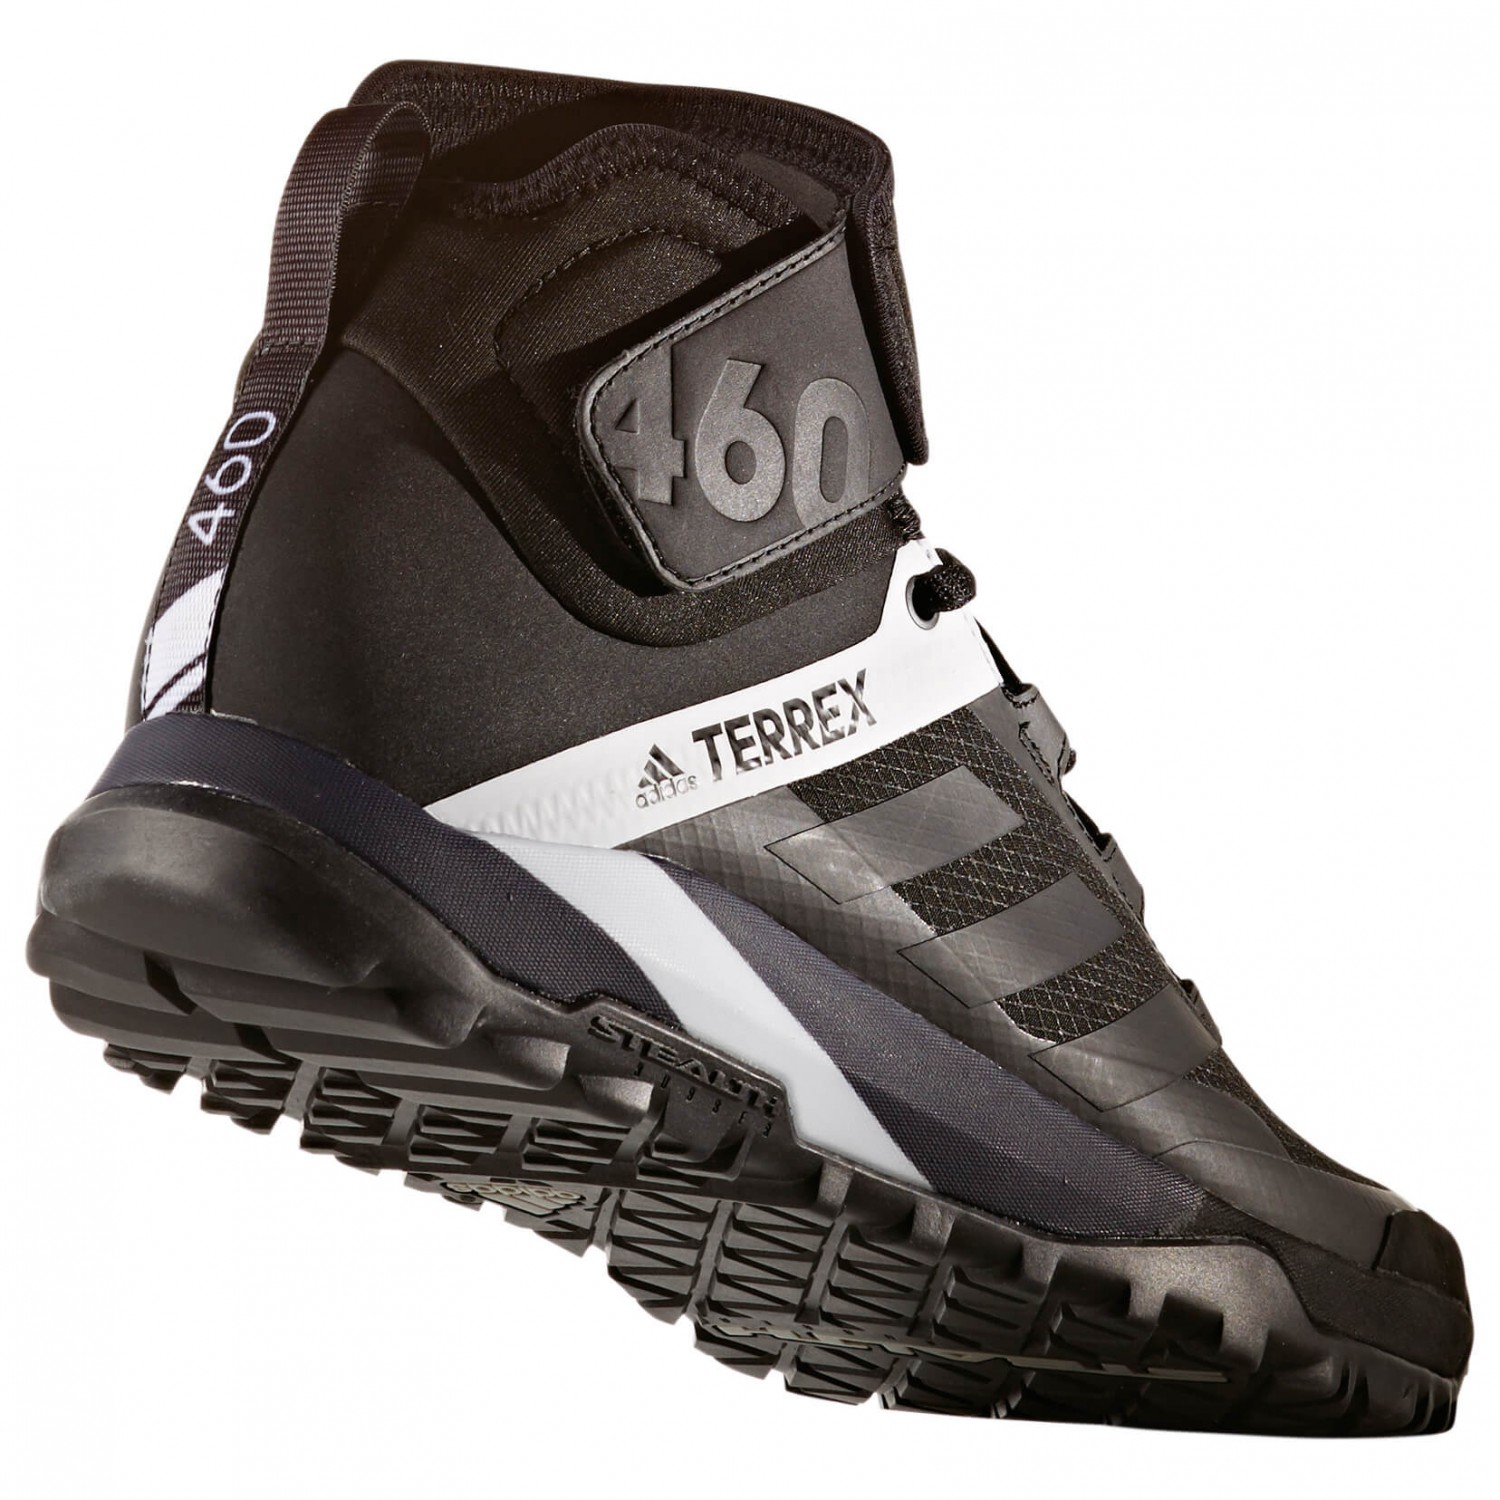 adidas Terrex Trail Cross Protect Boots